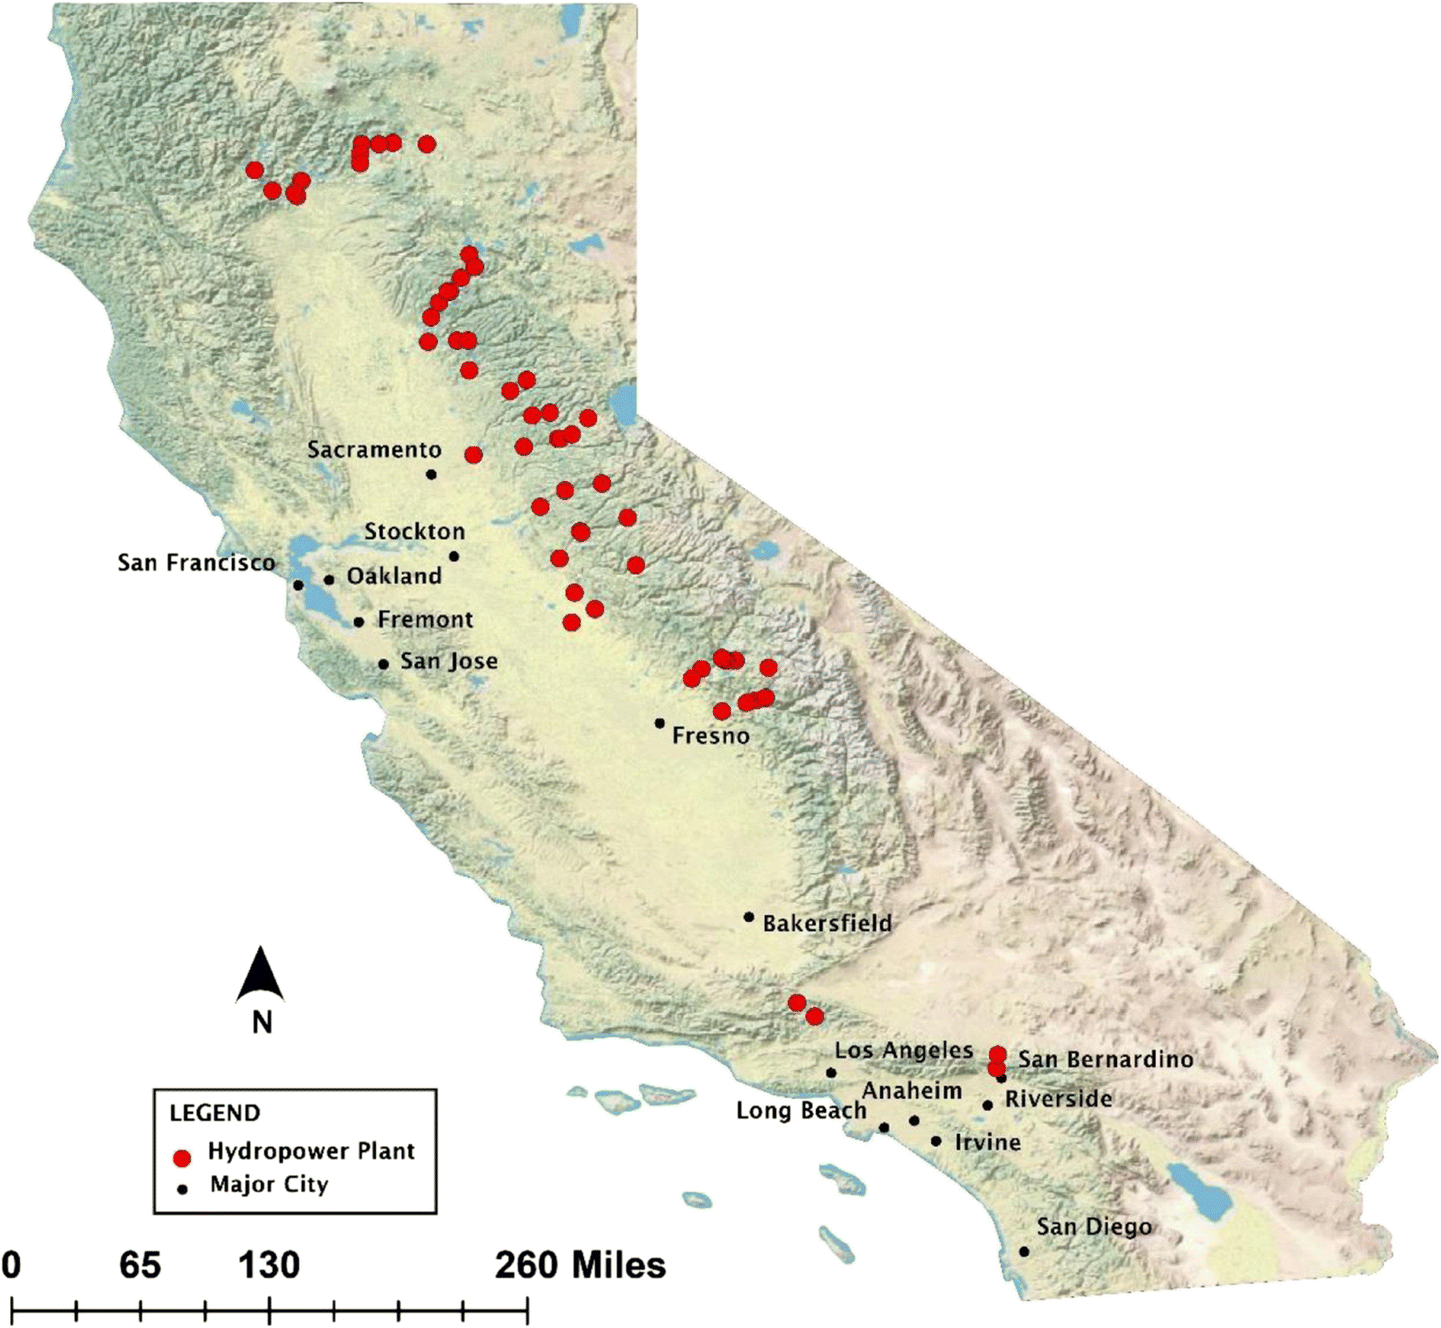 Assessing climate change impacts on California hydropower